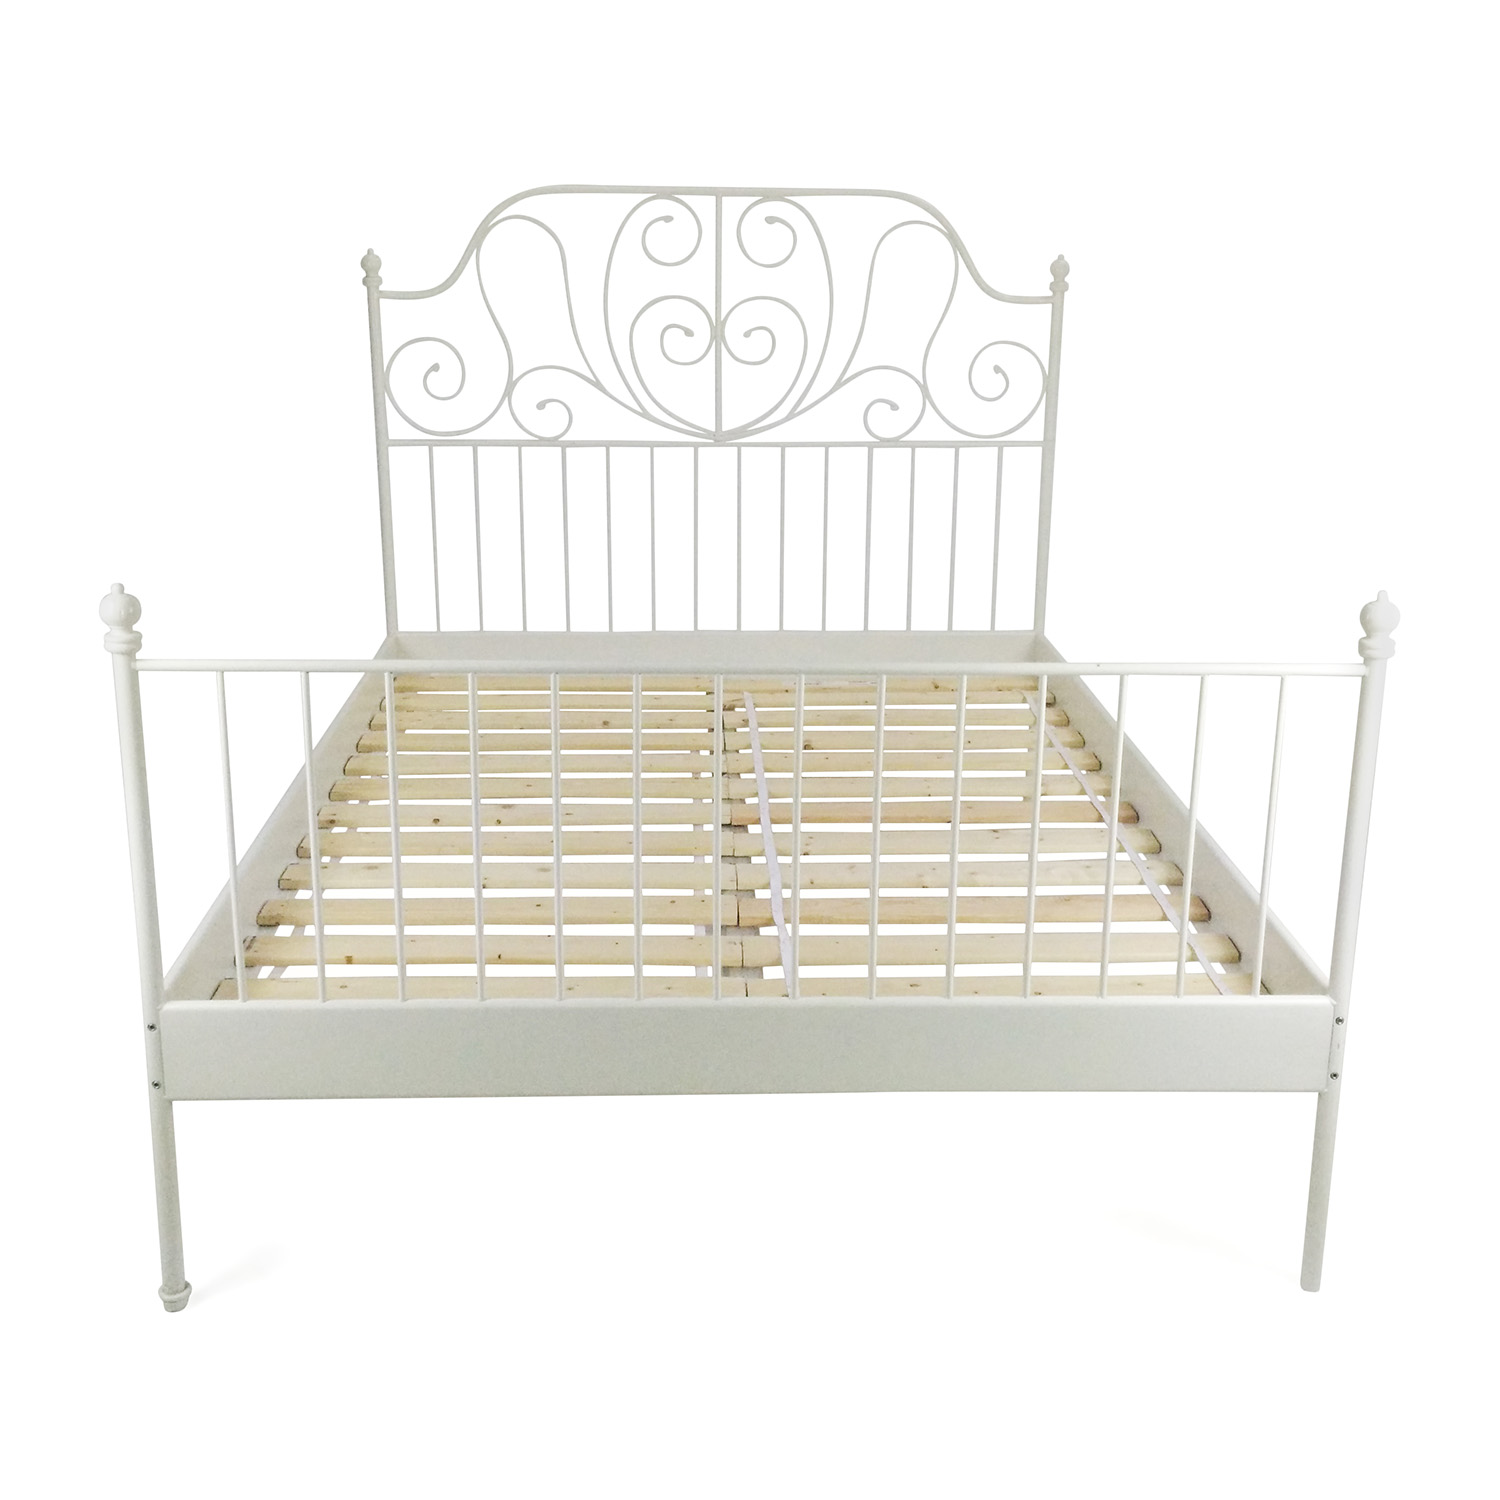 Ikea IKEA Queen Sized Iron Bed Frame nyc